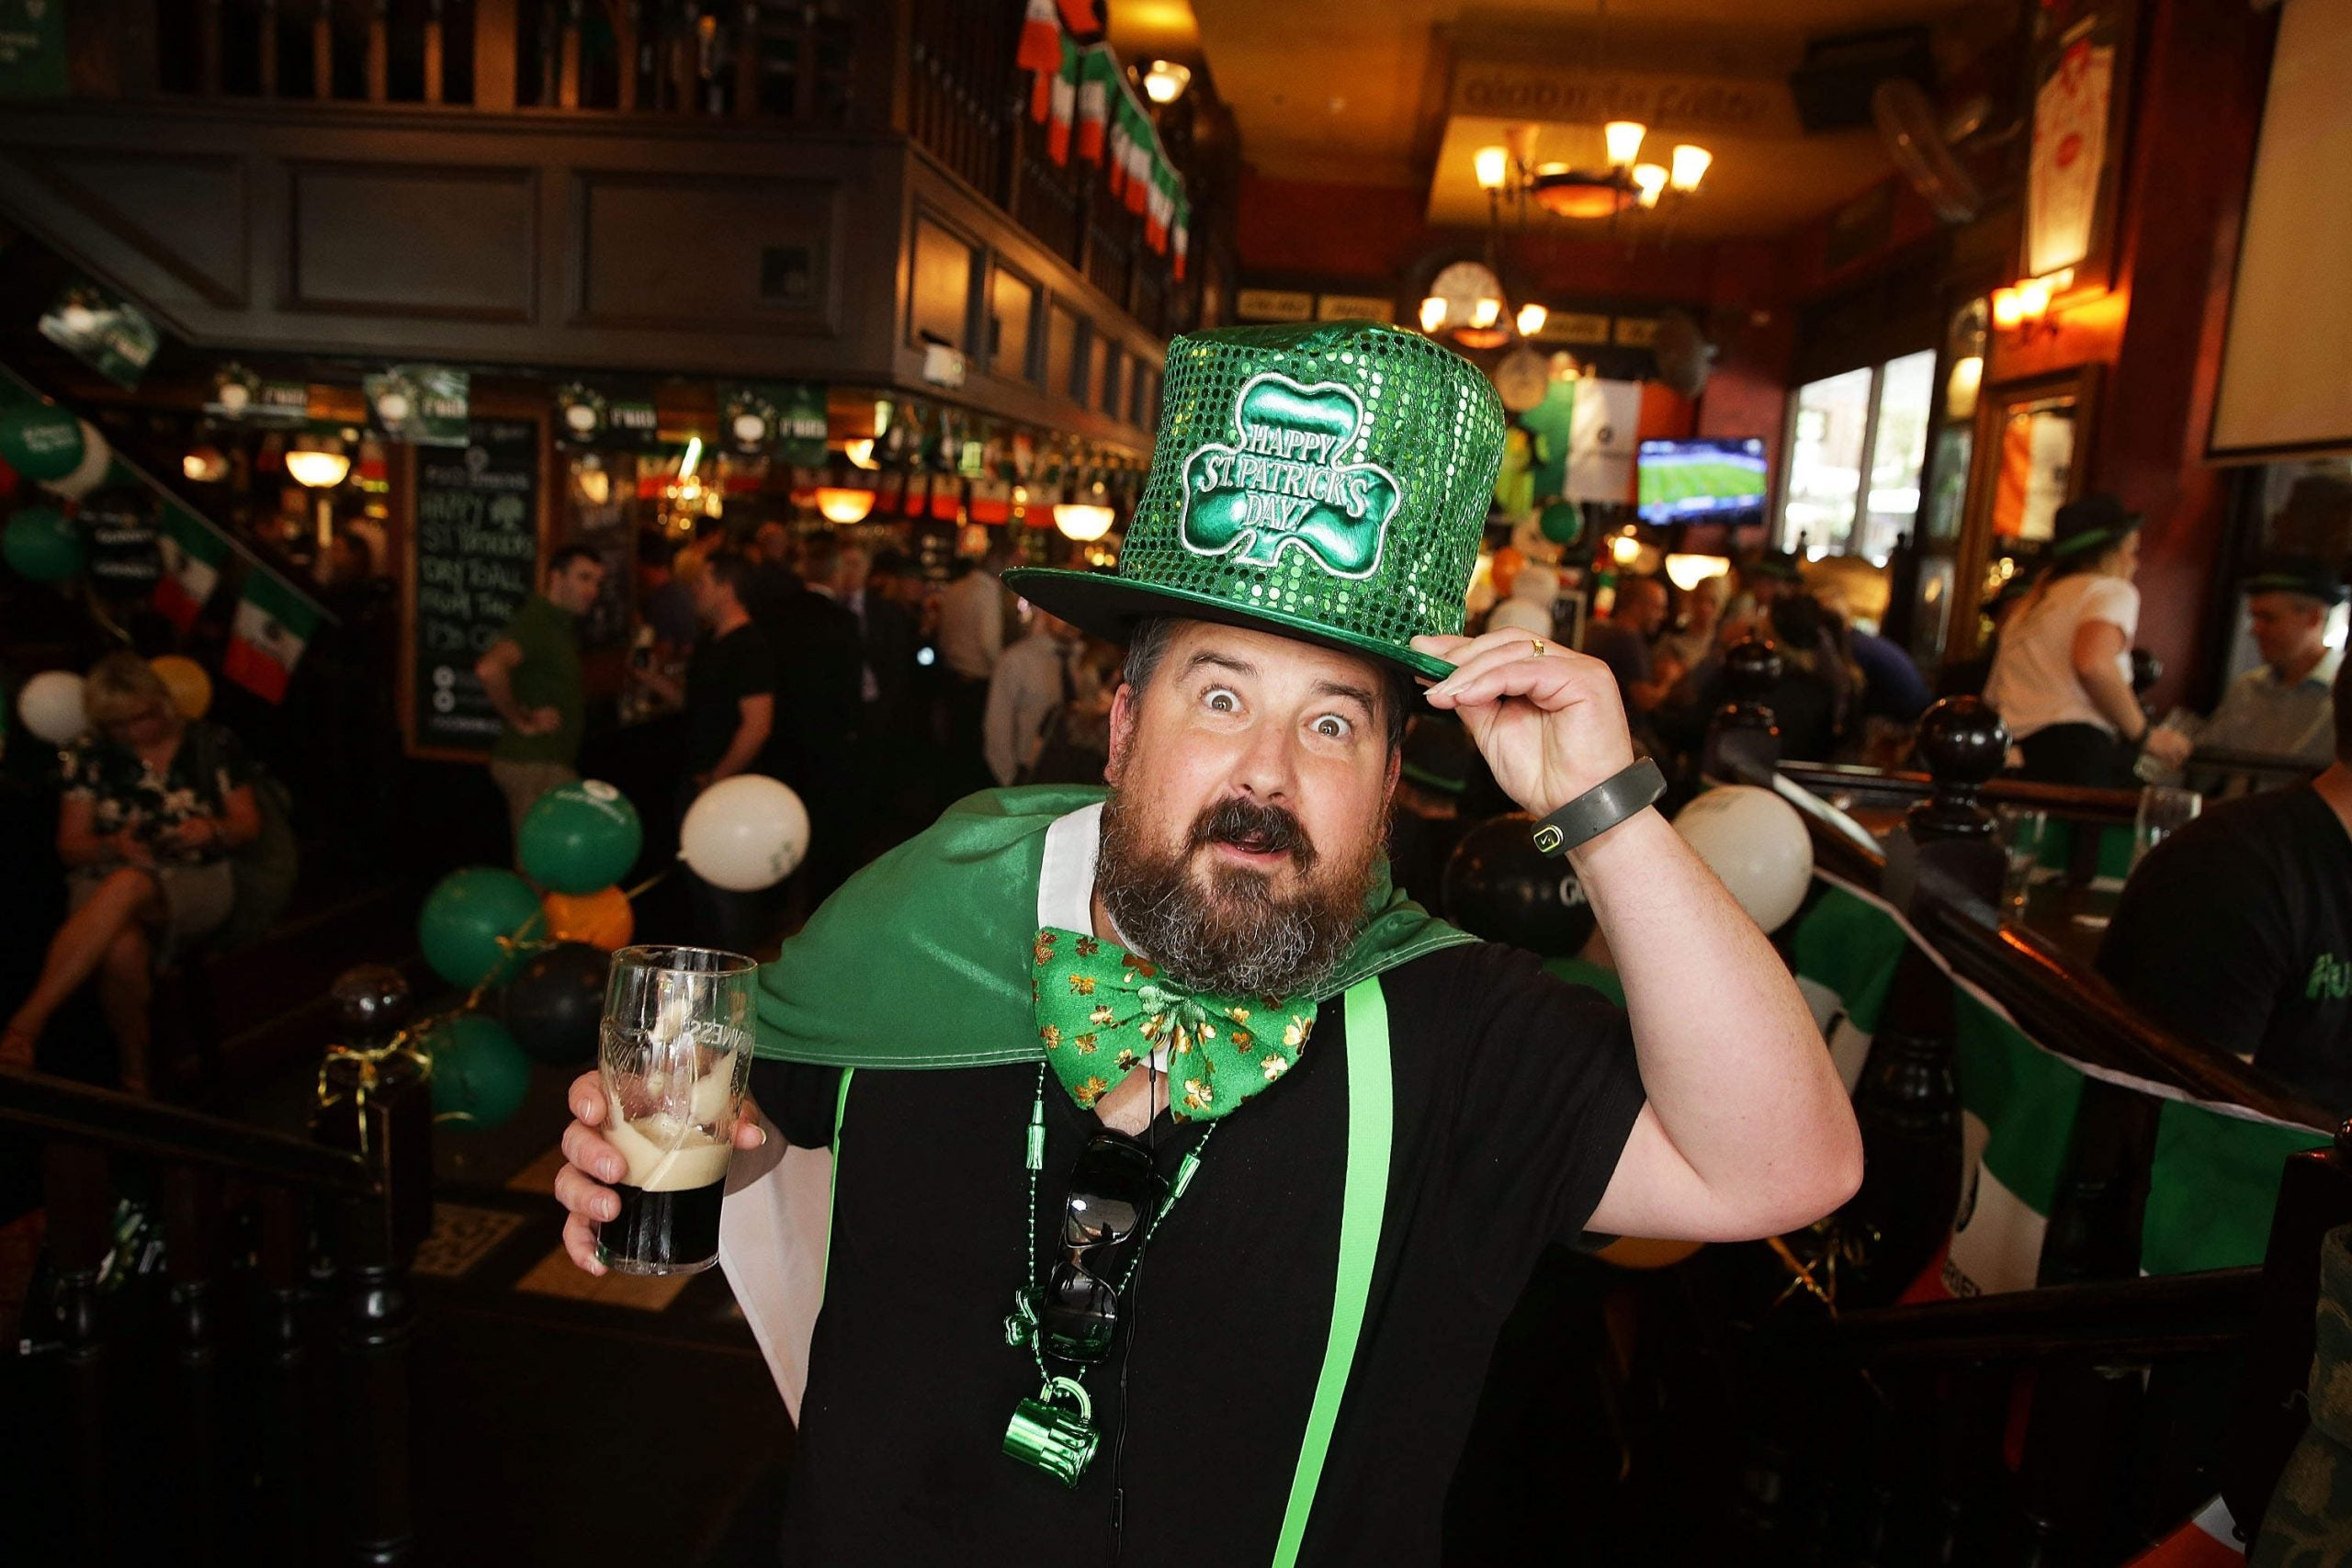 The Irish identity crisis: why St Patrick's Day is an odd holiday